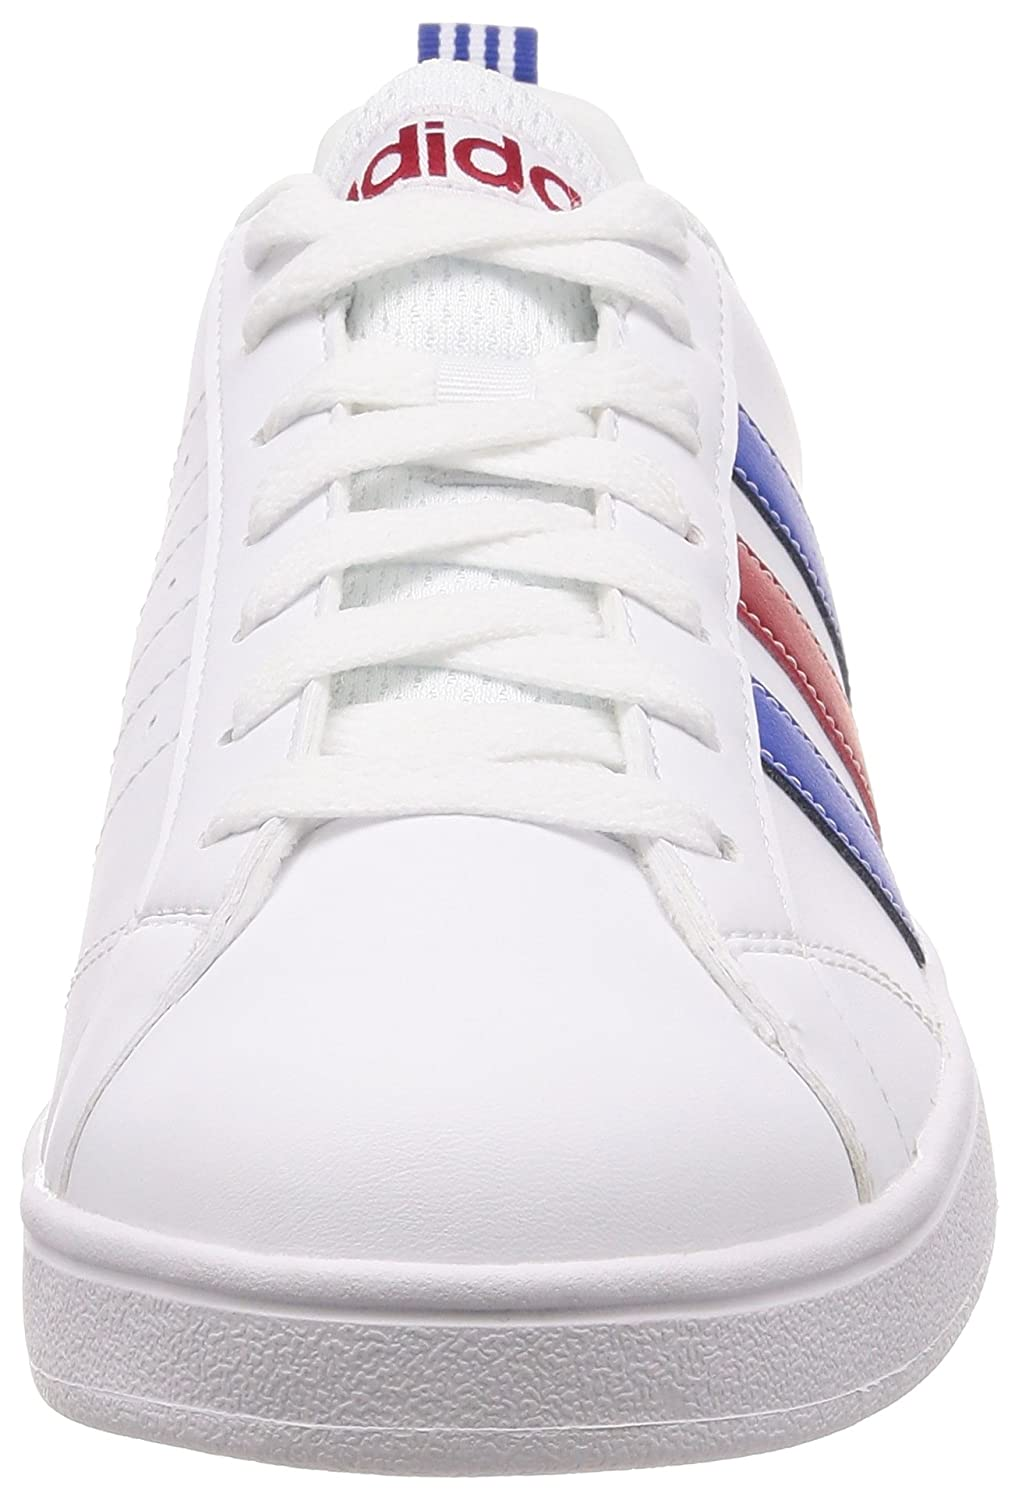 huge selection of 17235 a82a3 adidas neo Men s VS Advantage Leather Sneakers  Buy Online at Low Prices in  India - Amazon.in